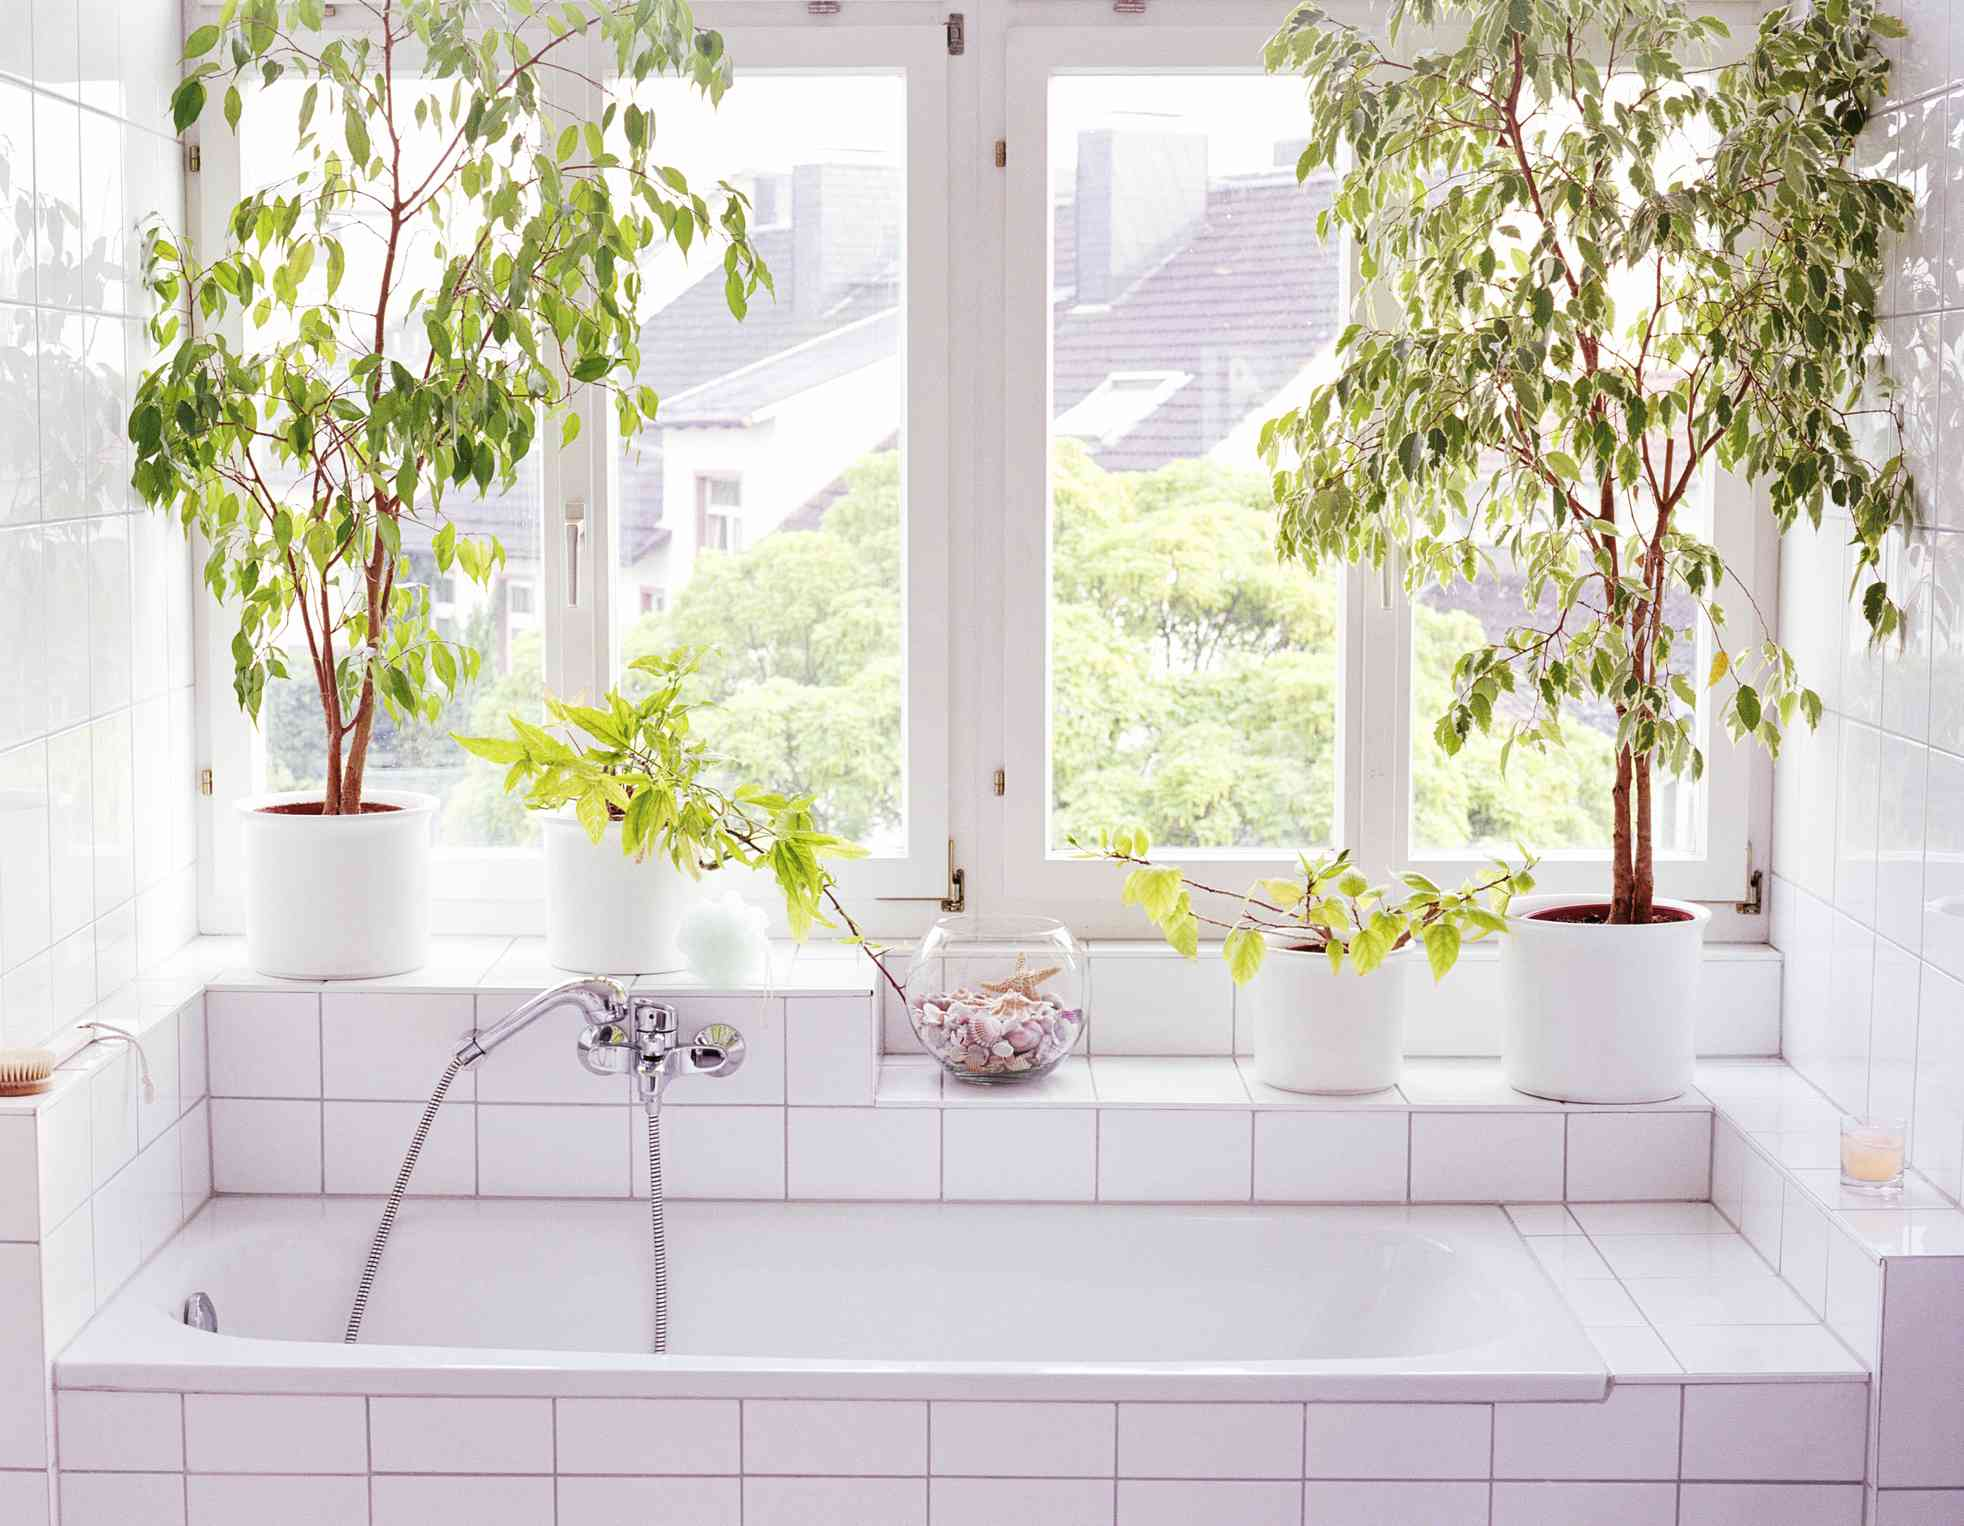 two weeping fig trees in white pots on a shelf above a white bathtub with a window